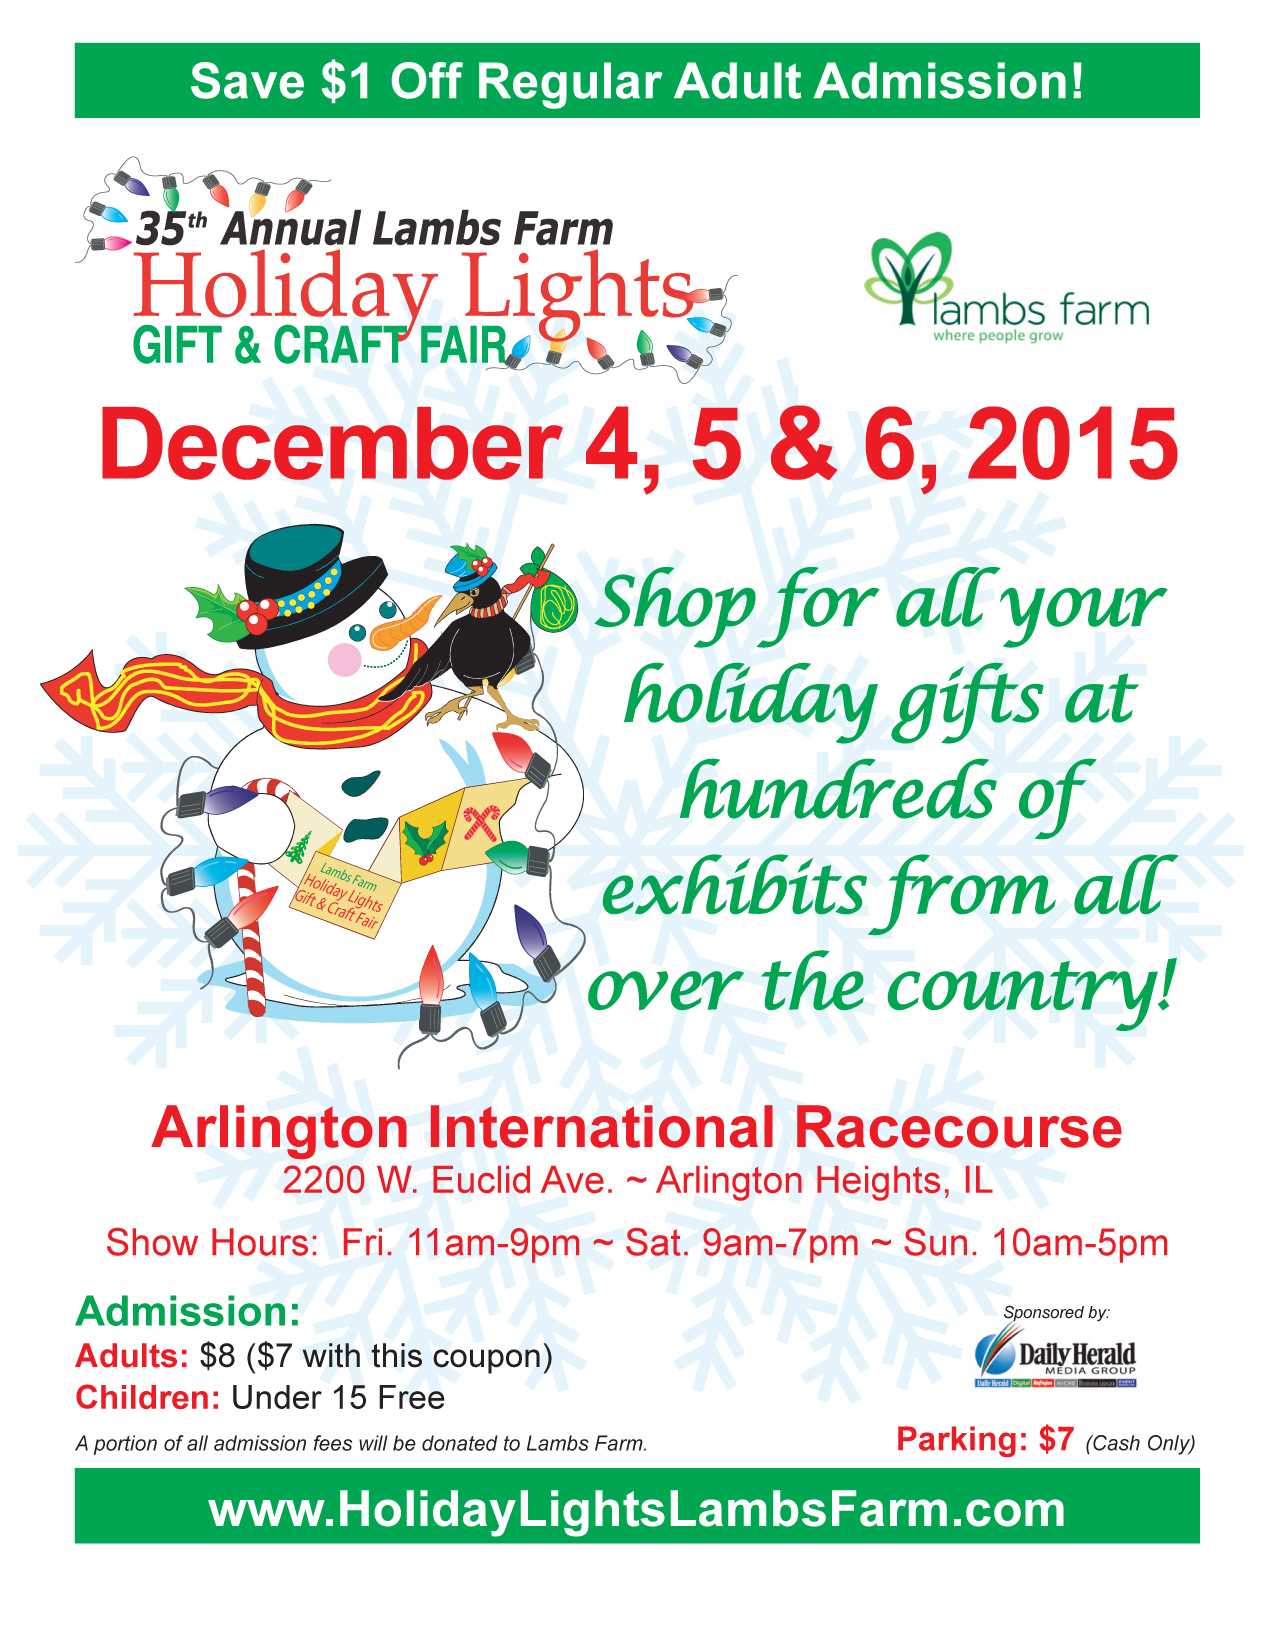 Save the date for the 2015 Lambs Farm Holiday Lights Gift & Craft Fair, organized by Tower Show Productions! Your holiday shopping is easy as 1-2-3 with the largest craft fair in Chicago scheduled for the first full weekend in December. Choose from hundreds of vendors selling everything from candy to jewelry, or crafts to clothing. Don't forget to stop by the Lambs Farm booth for delicious items made right on campus – including our famous butter cookies, chocolates, preserves and more!   Dates and  Hours:  Friday, December 4, 11 a.m. – 9 p.m. Saturday, December 5, 9 a.m. – 7 p.m. Sunday, December 6, 10 a.m. – 5 p.m.   Location:  Arlington International Racecourse 2200 West Euclid Avenue, Arlington Heights   Cost:  $8 per person admission ( Save $1 with this coupon! ) $7 per vehicle parking